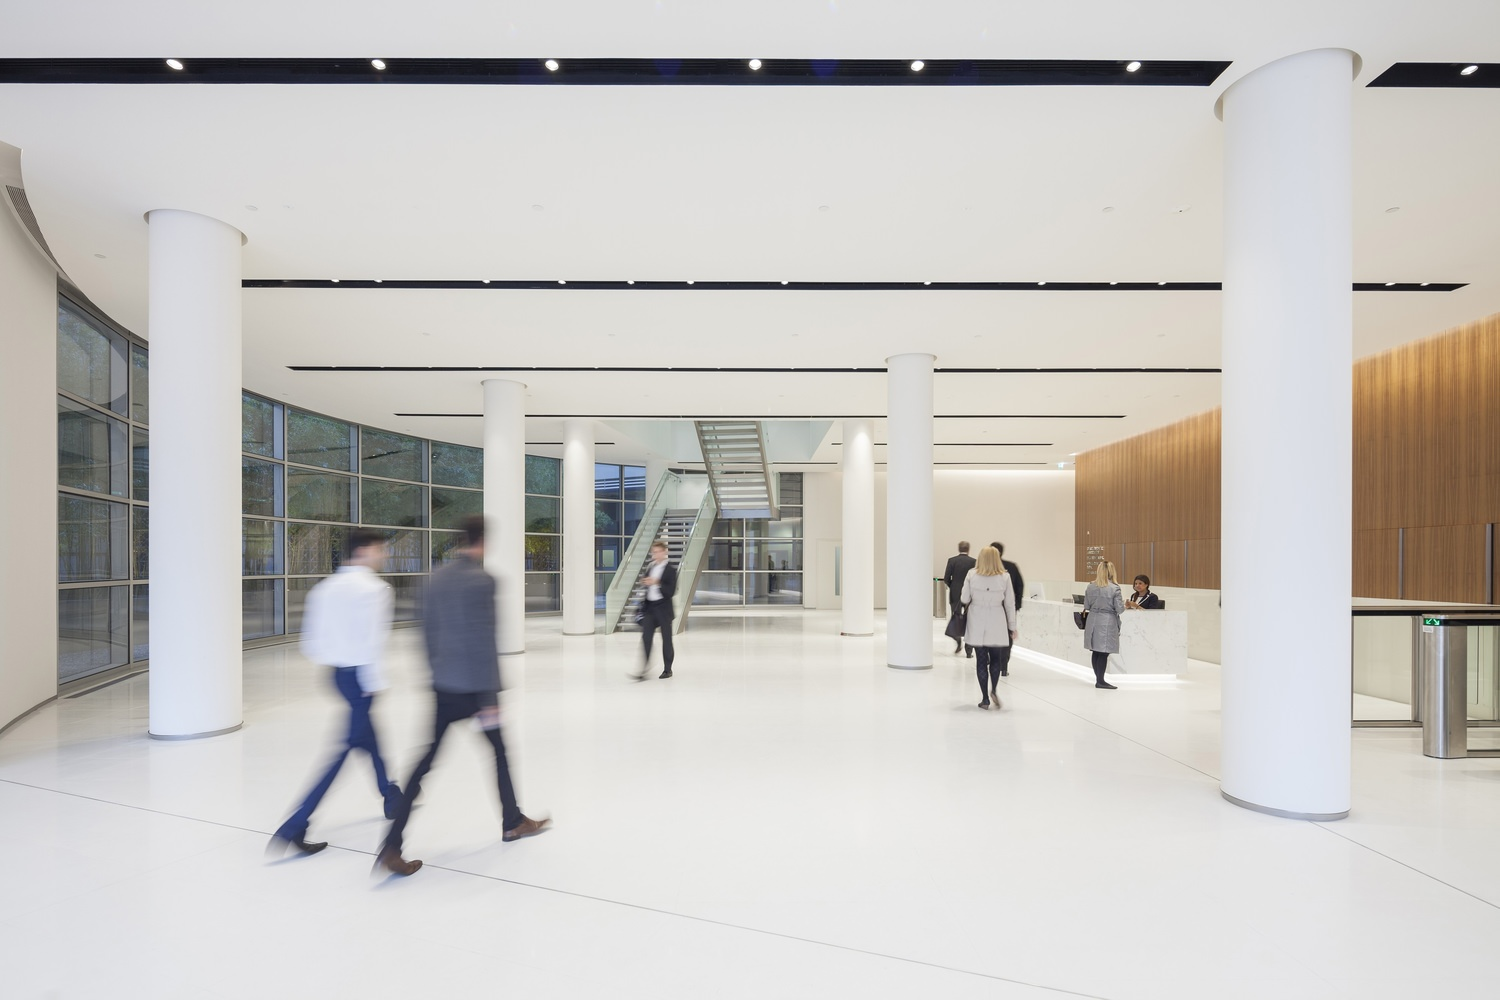 A small group of people in business attire walking along the lobby that has white columns and tiles.